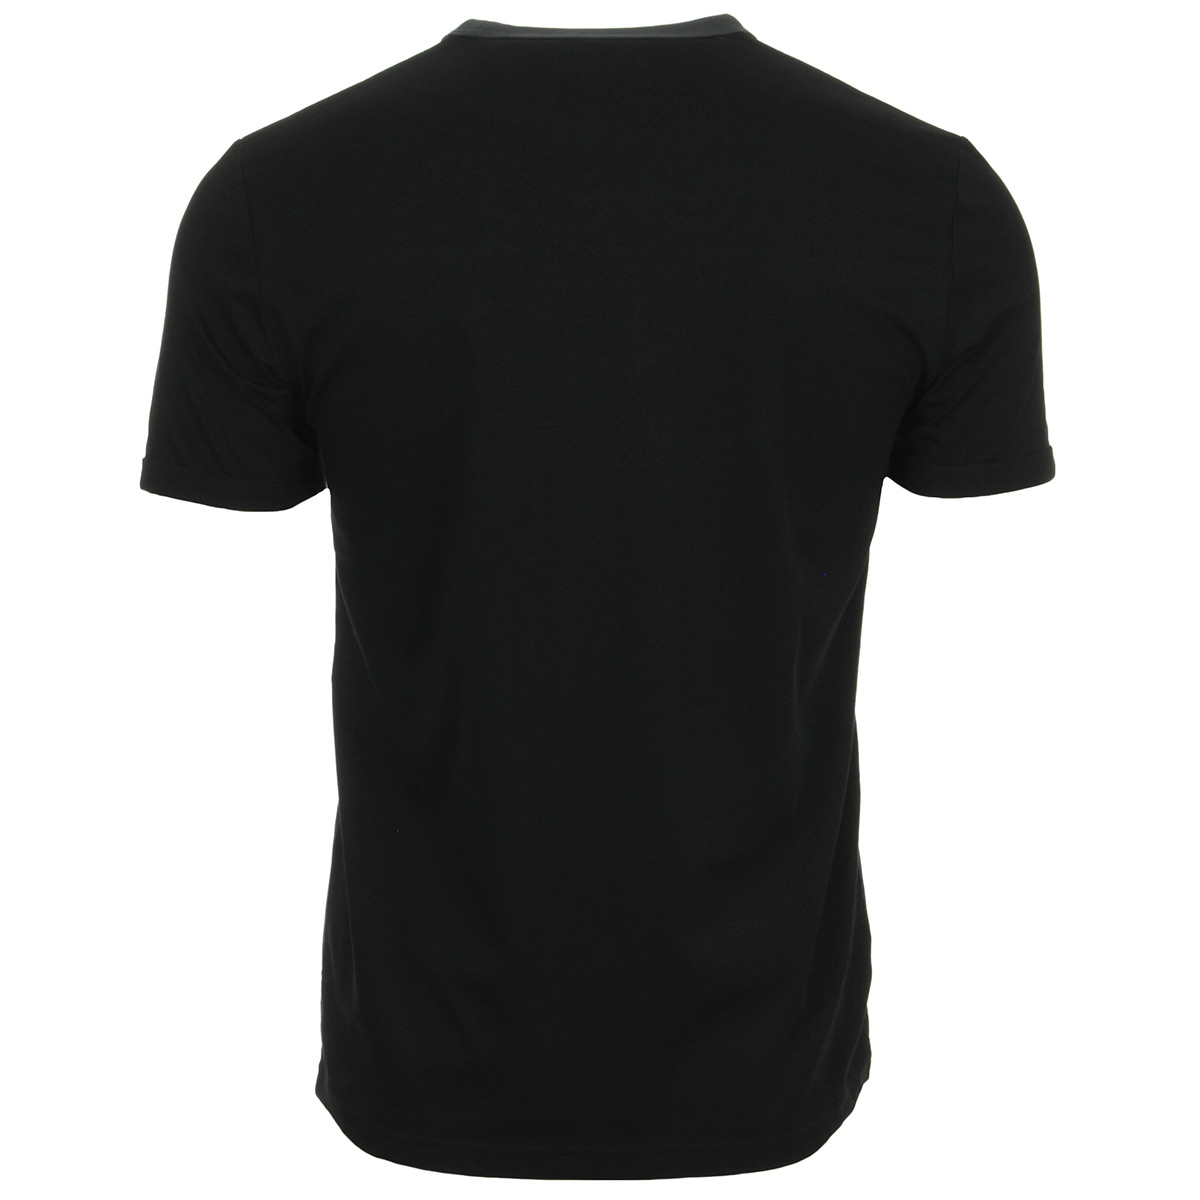 Fred Perry Colour Block Panel T-shirt Black M2544198, T-Shirts homme